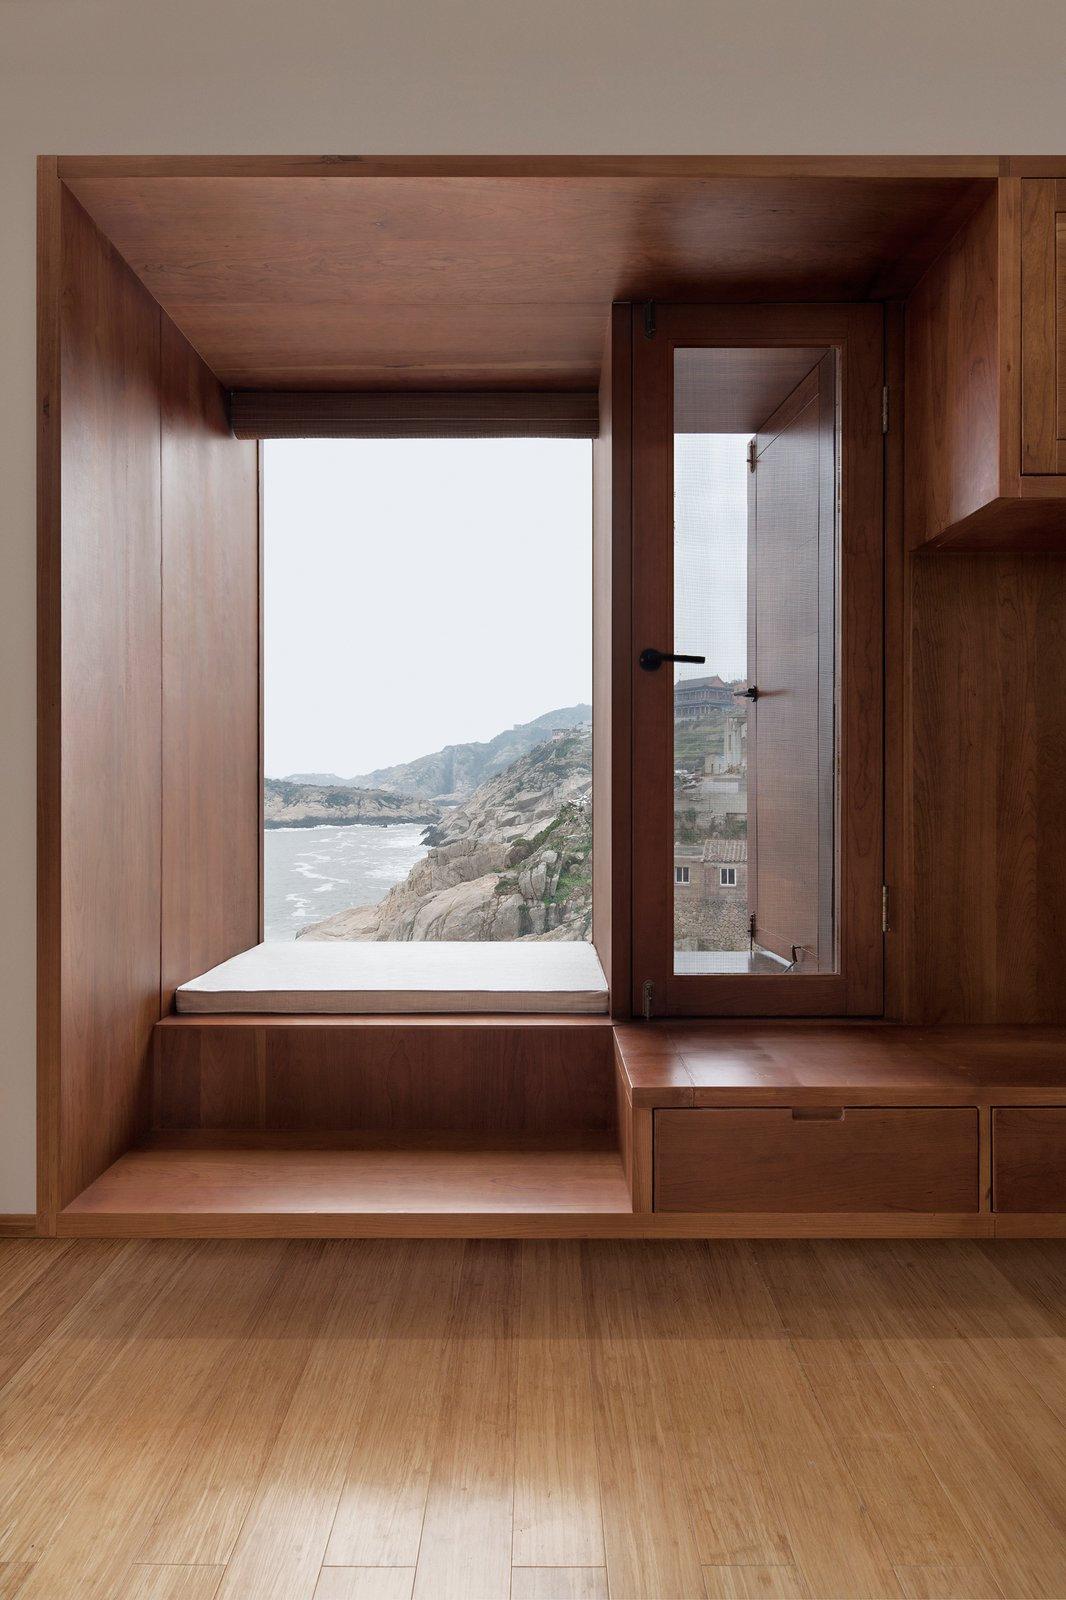 Windows are used to maximize space.